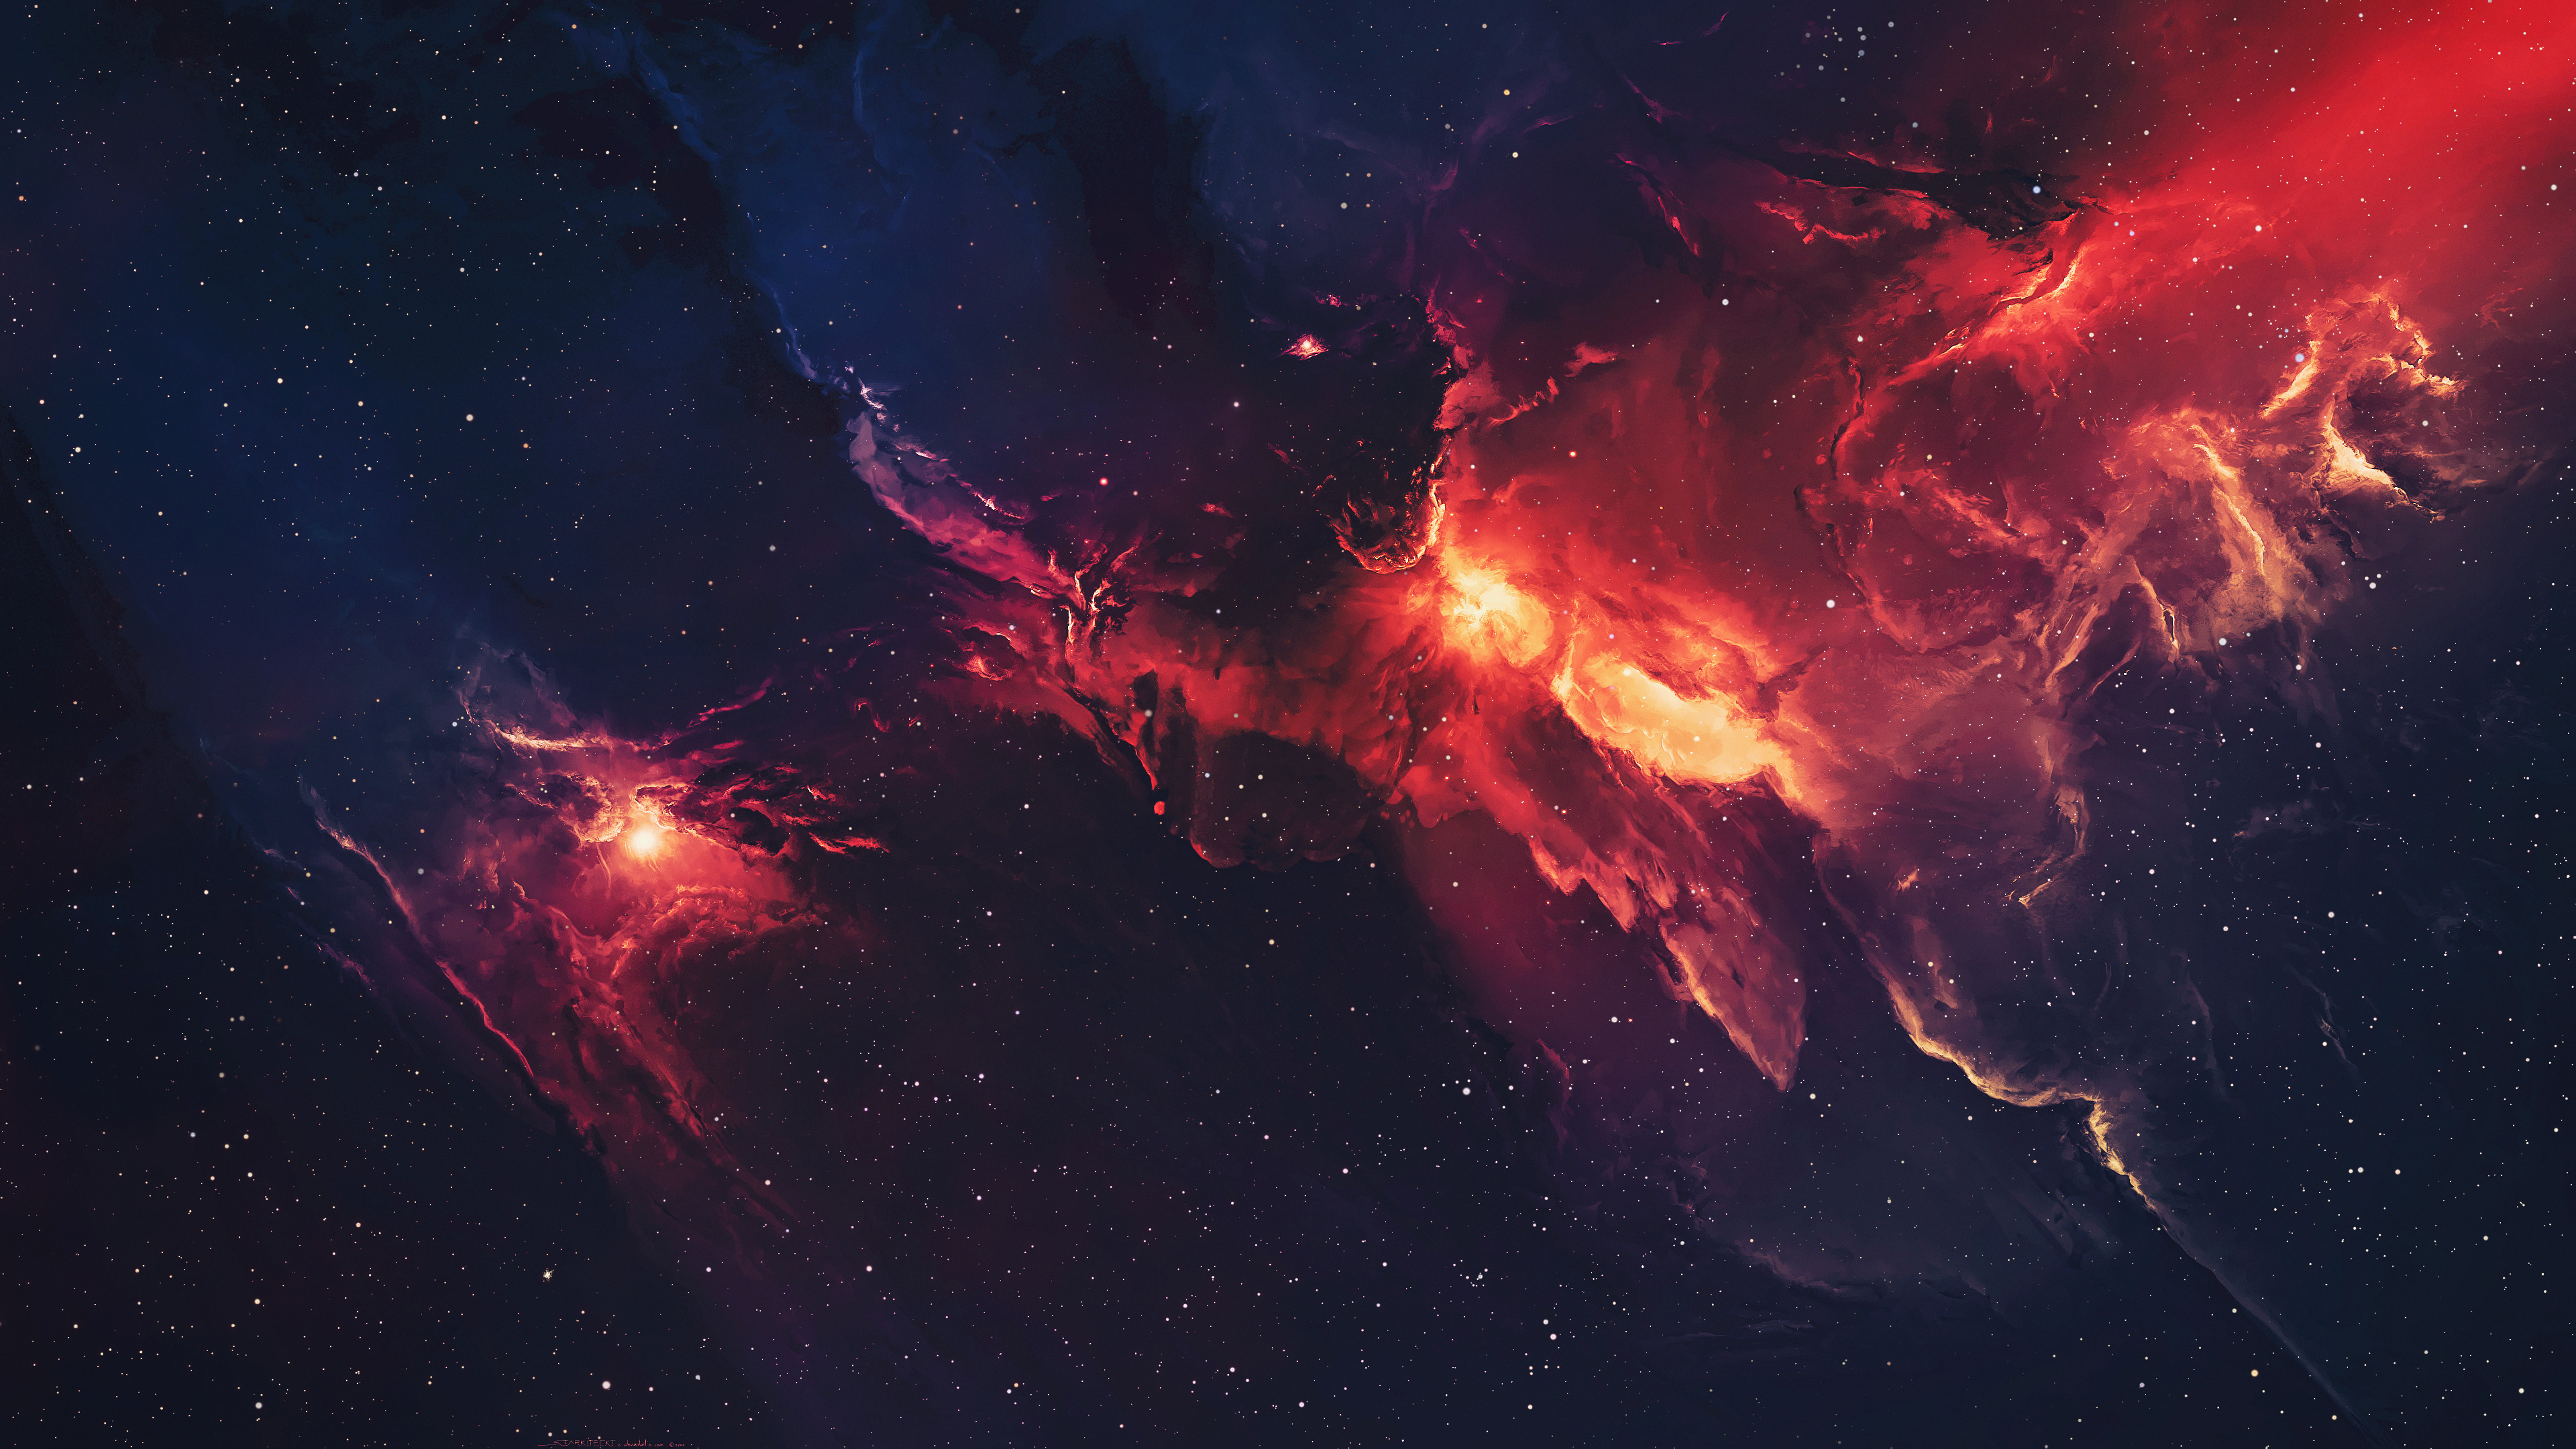 Galaxy Space Wallpaper 4k Apk Download: Galaxy Space Stars Universe Nebula 4k, HD Digital Universe